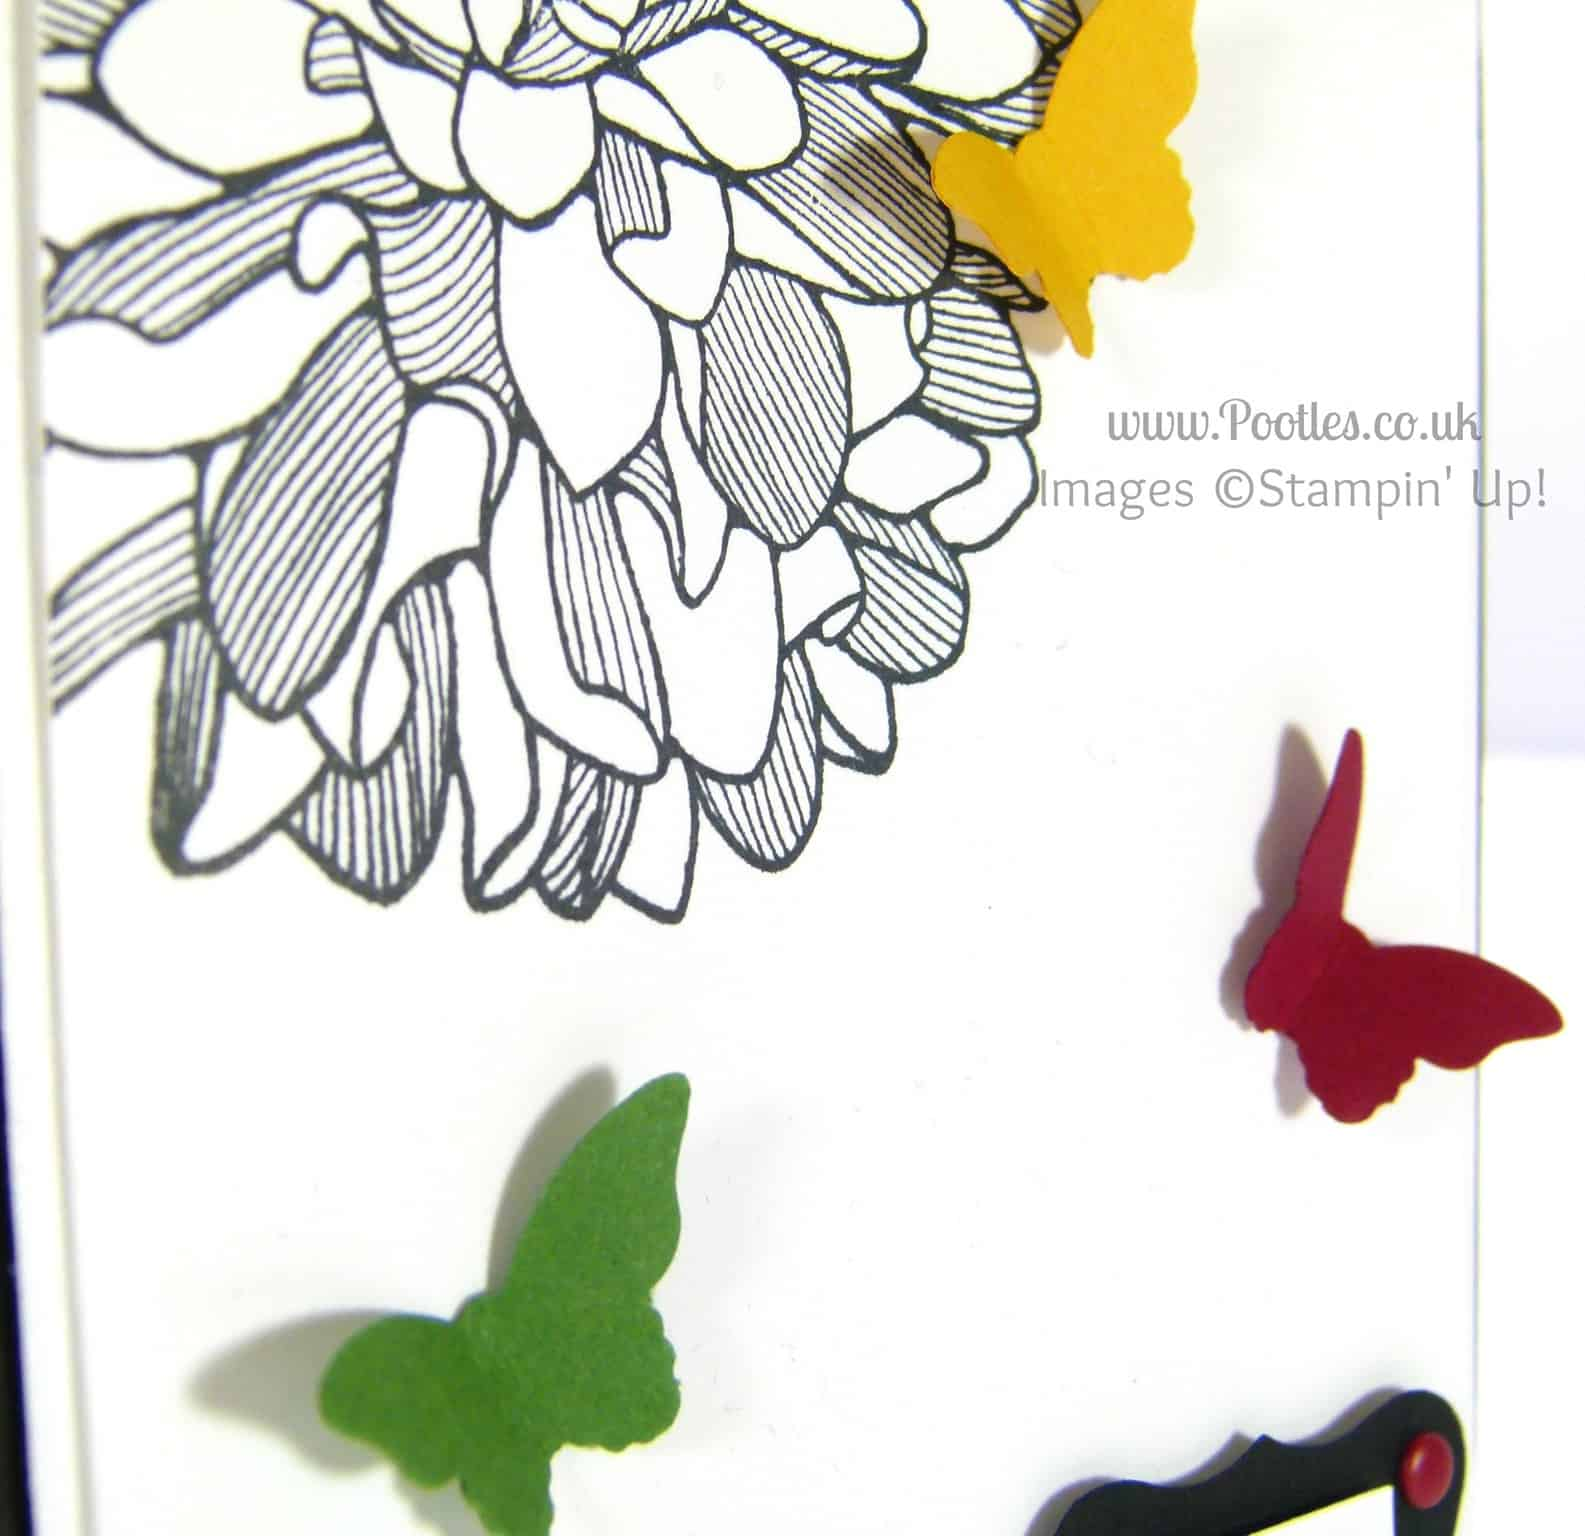 Stampin' Up! UK Independent Demonstrator Pootles - Regal Regarding Dahlias and Butterflies detail